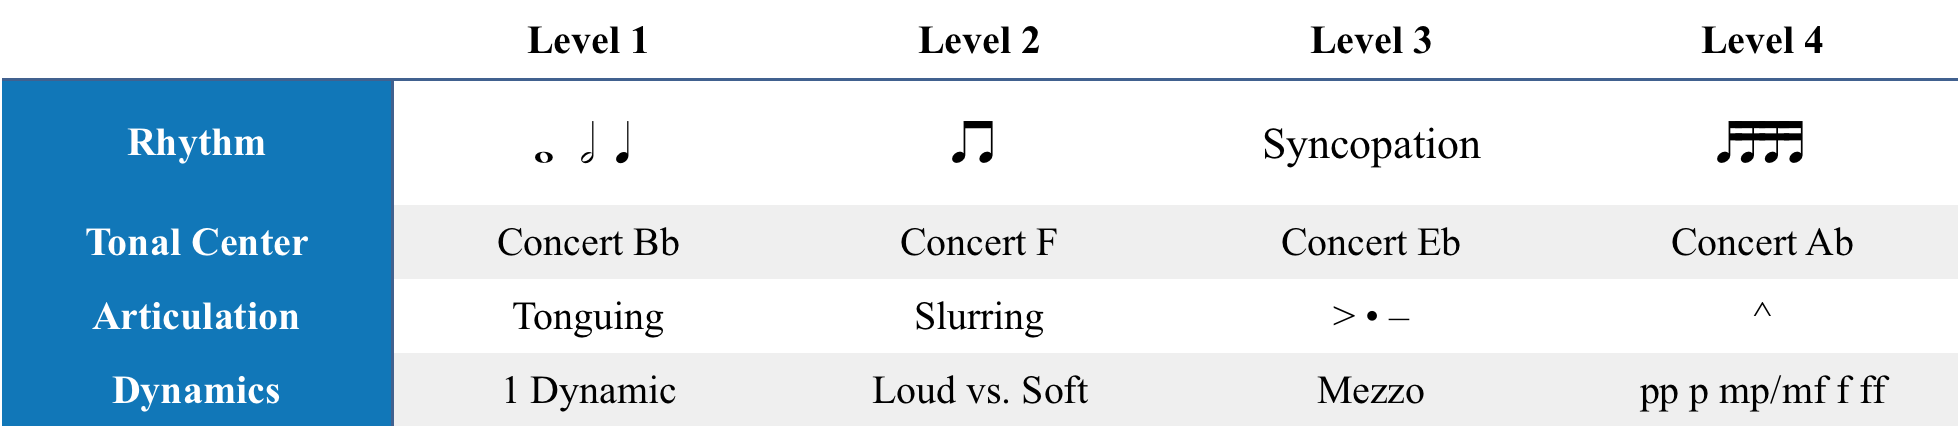 EXAMPLE OF RPG GRADING IN EARLY INSTRUMENTAL MUSIC EDUCATION